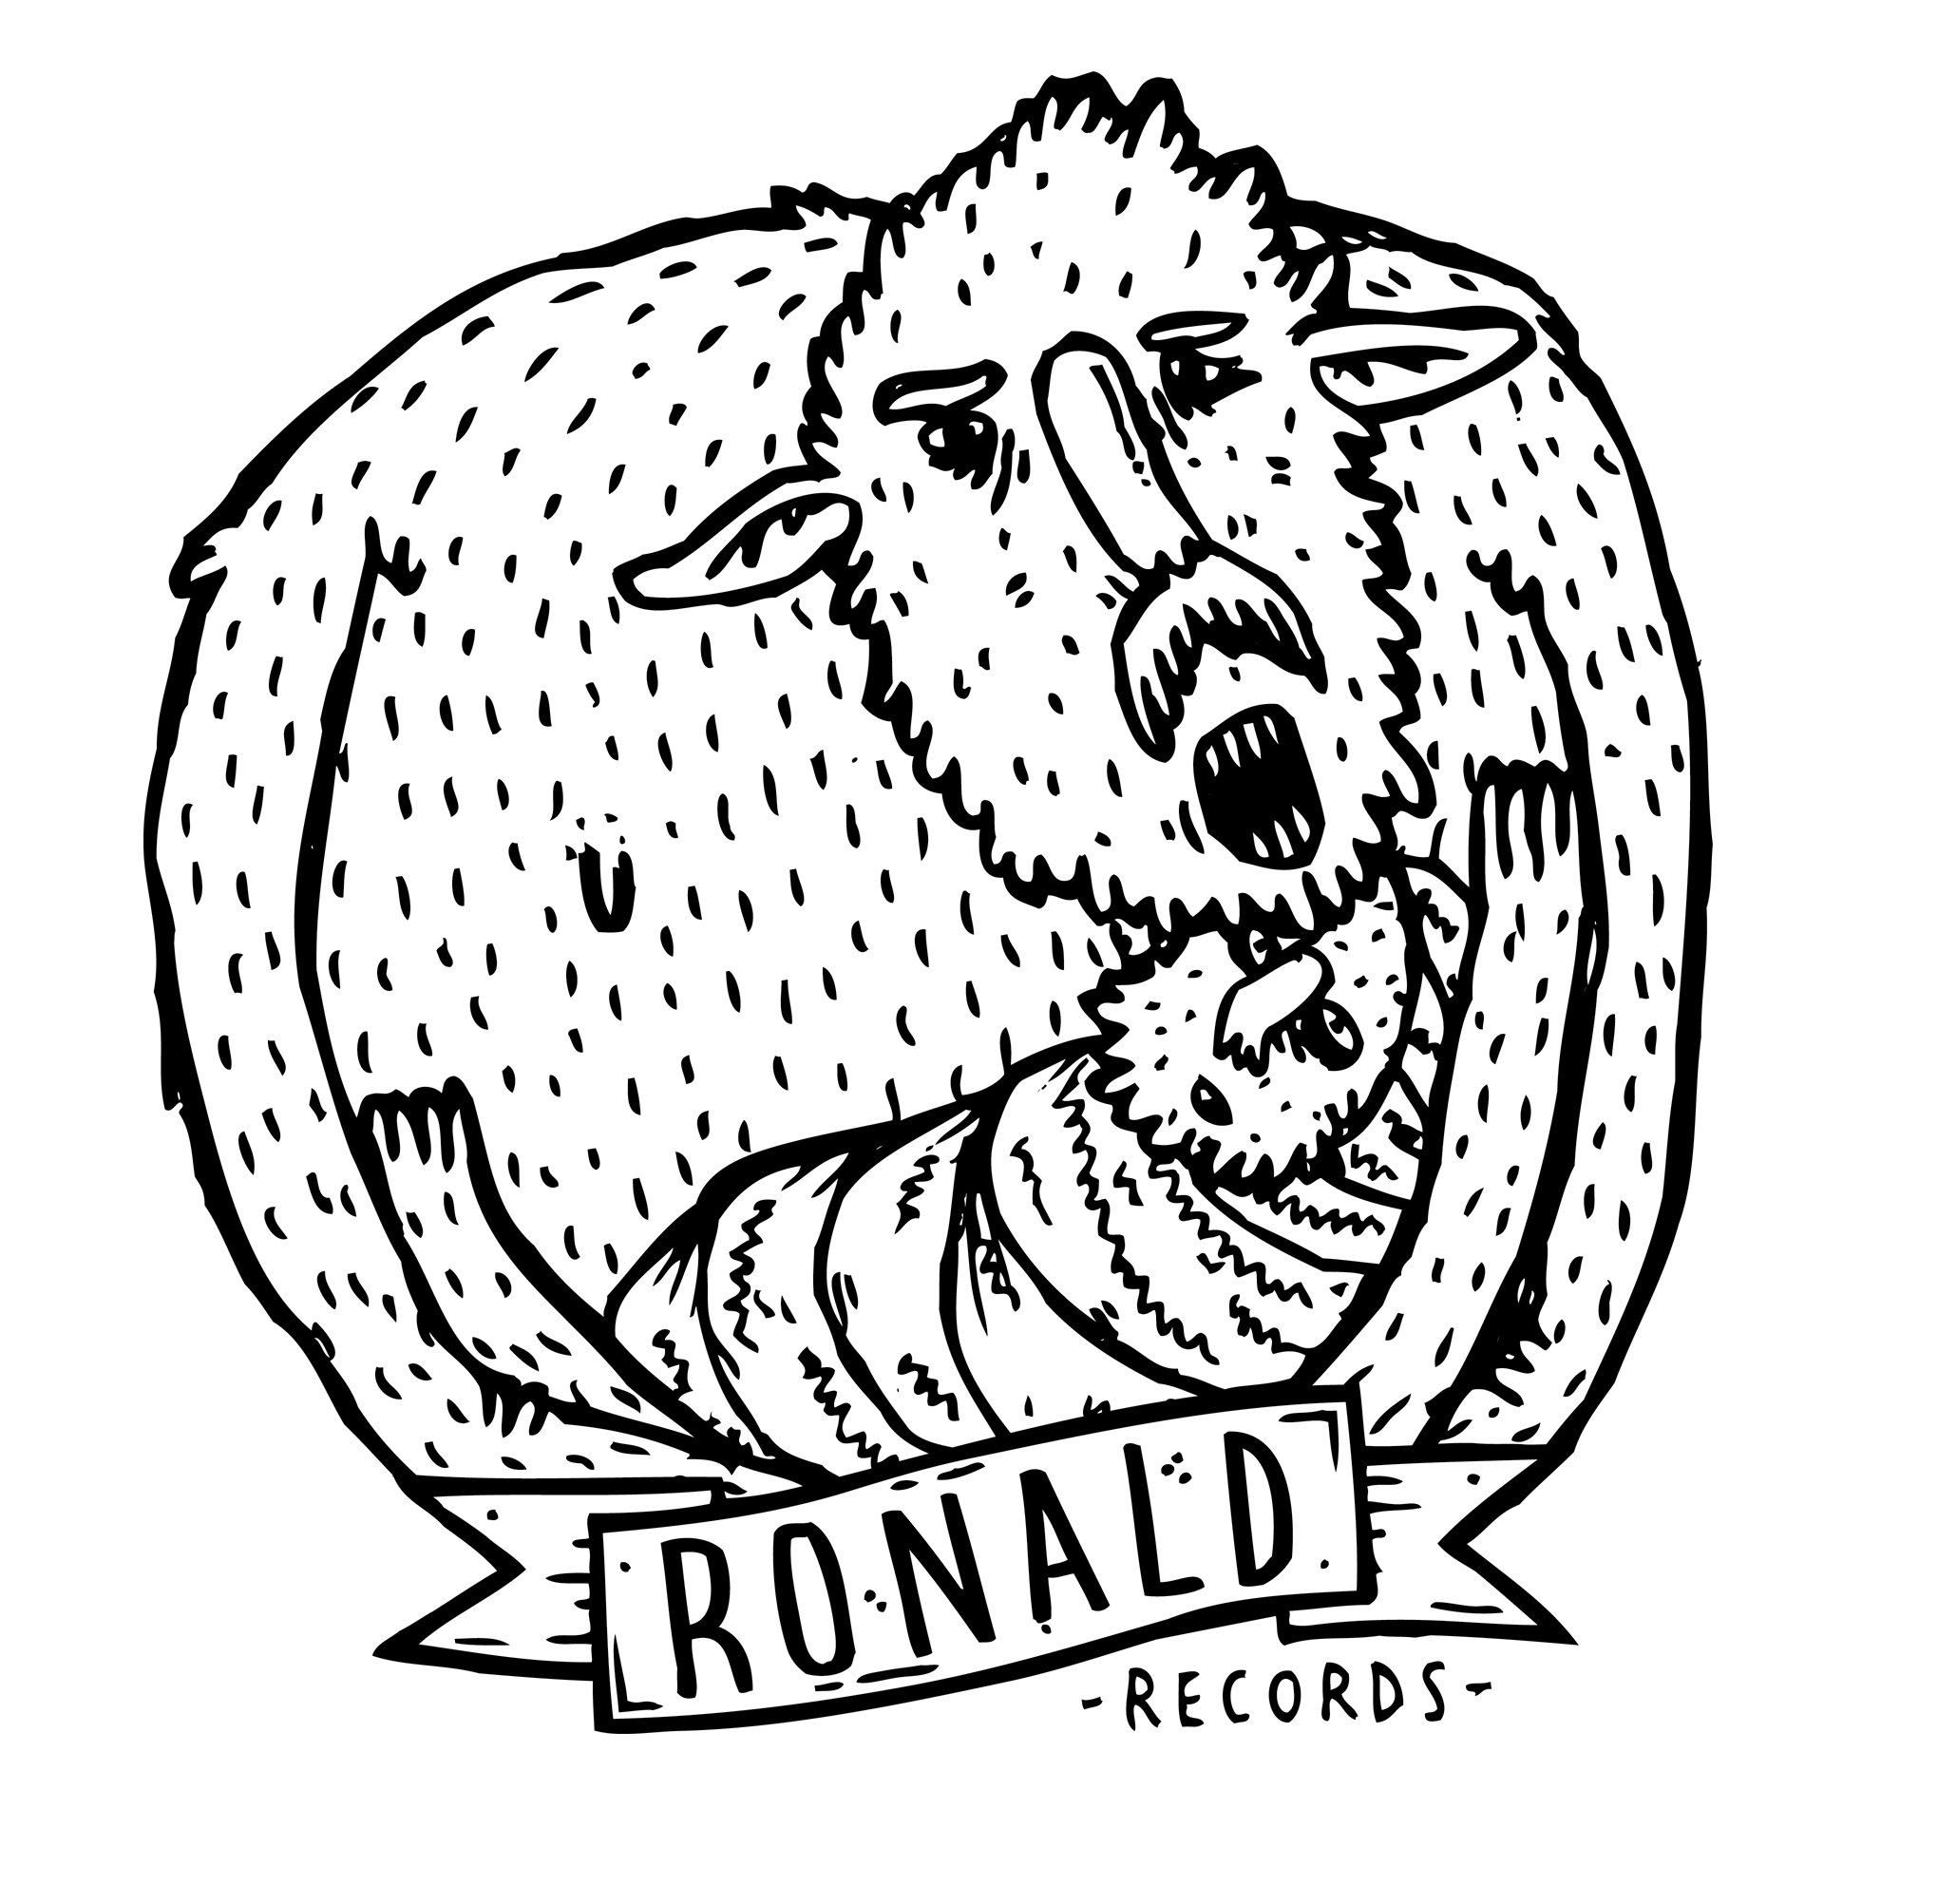 Ronald Records - Enamel Pin + Patch